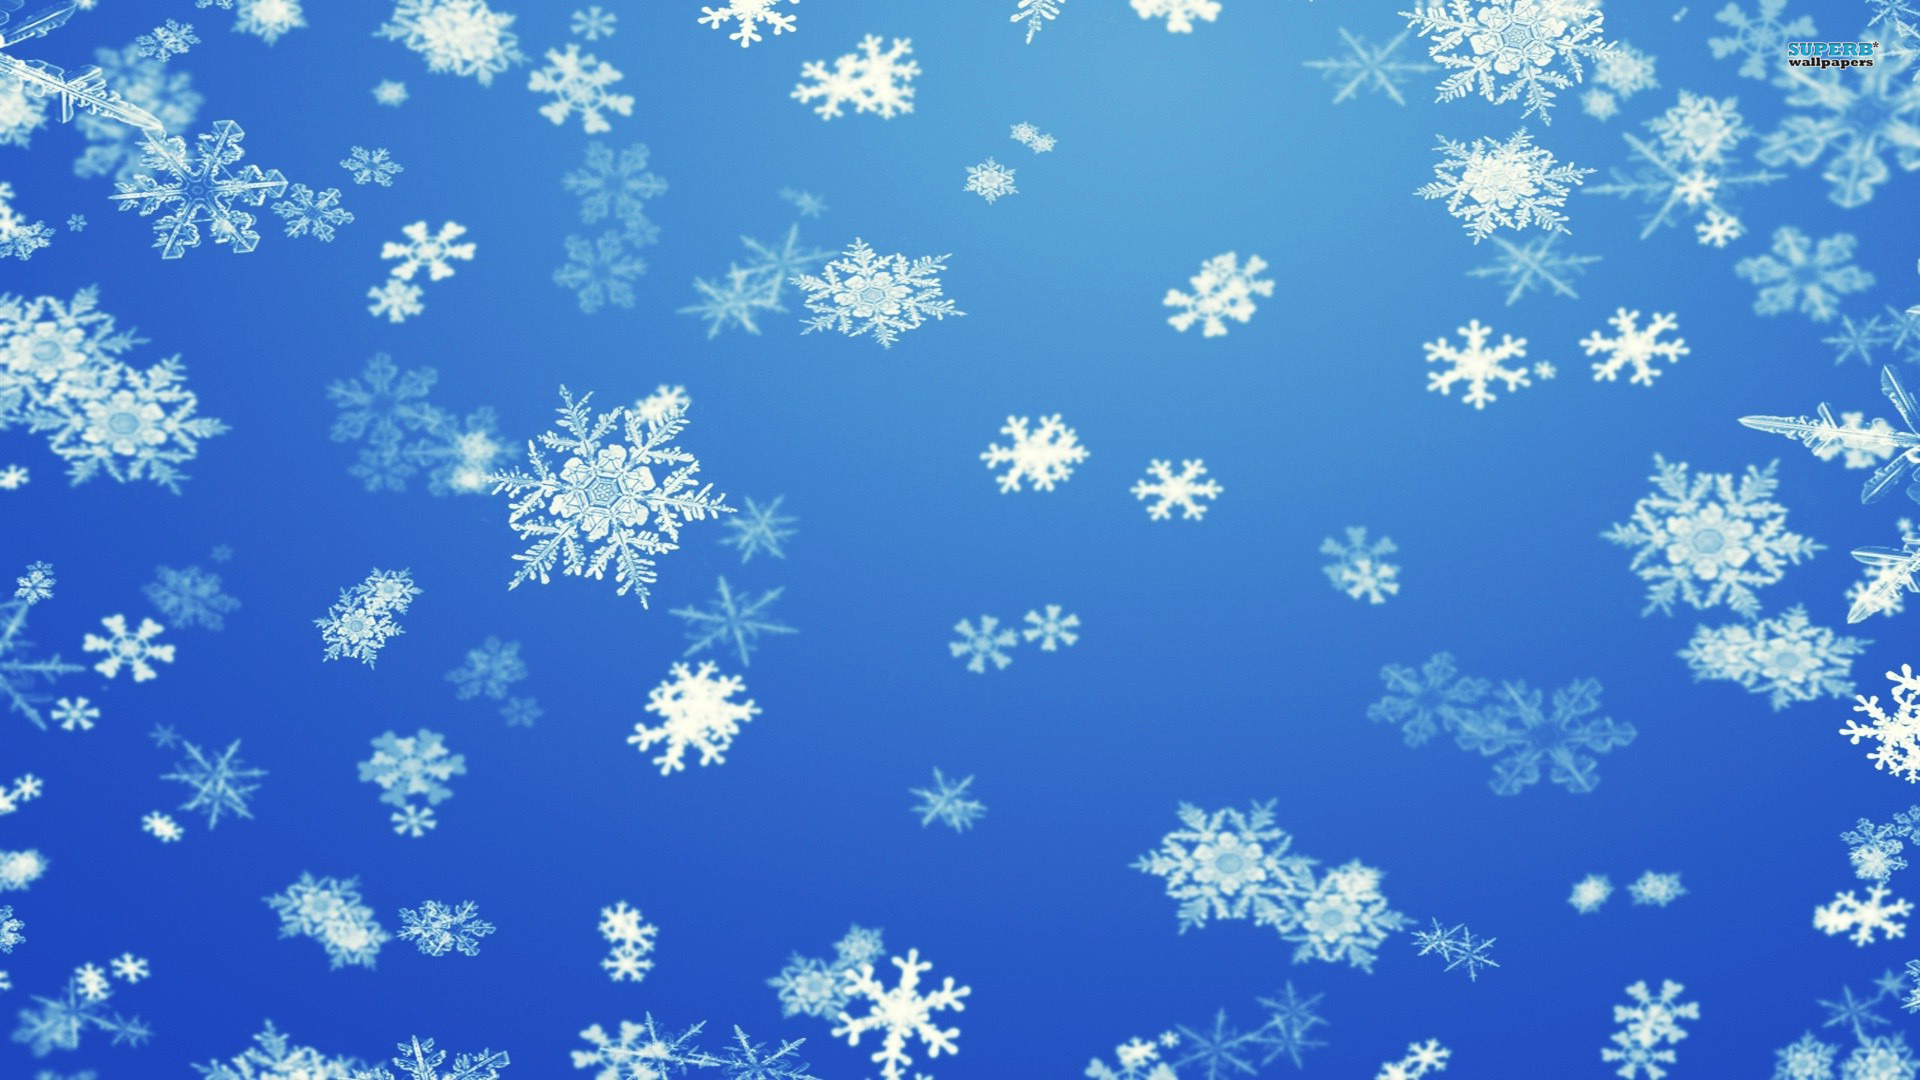 Snowflake background wallpaper